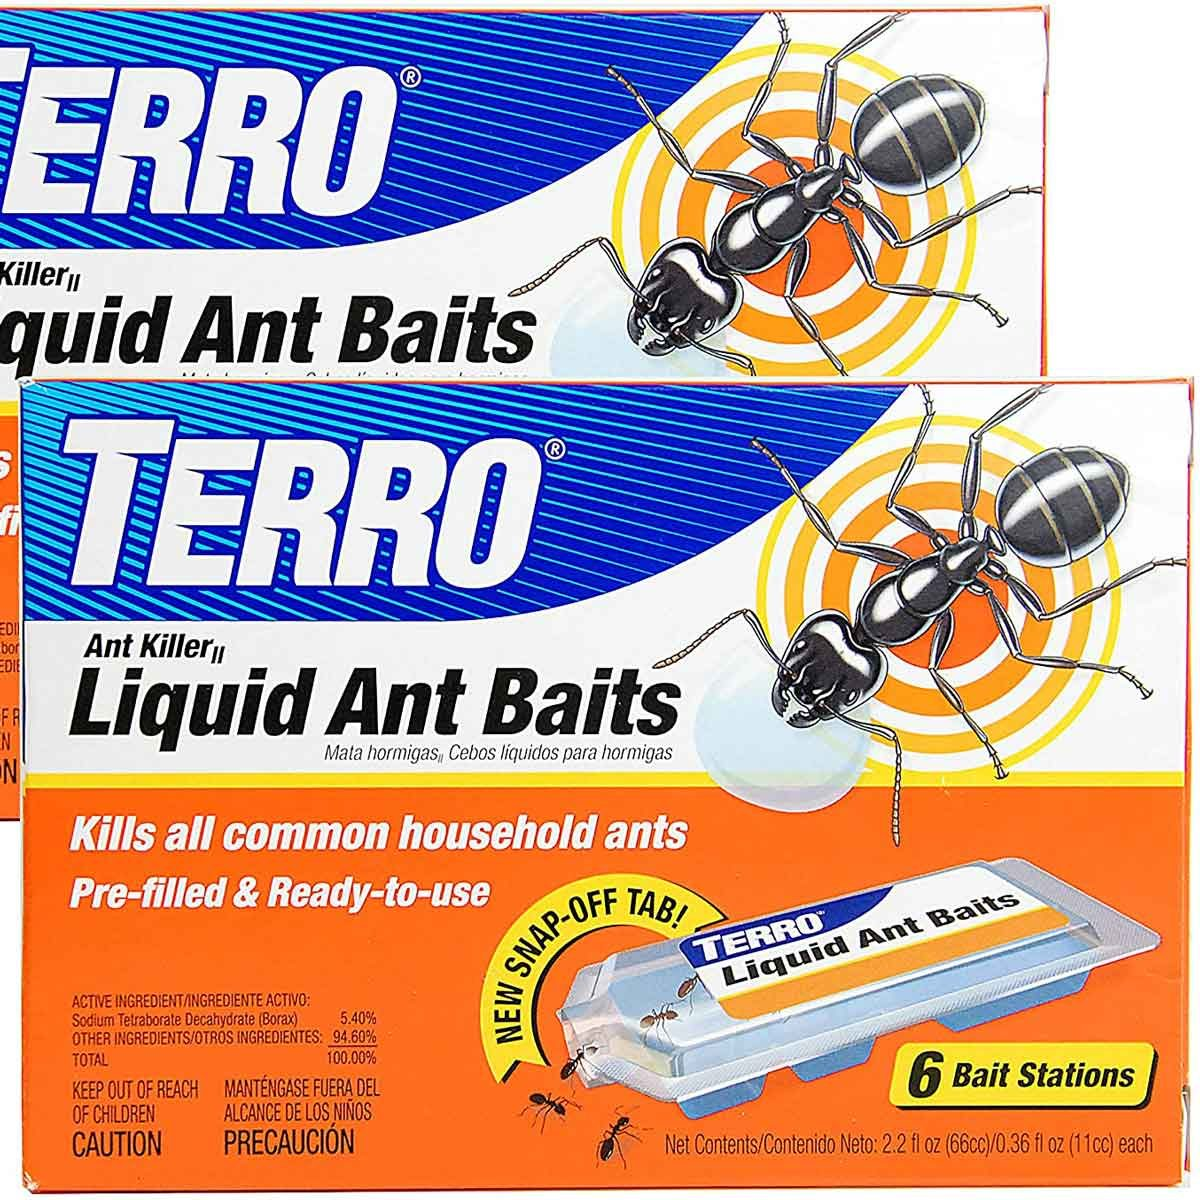 Package of Terro ant baits